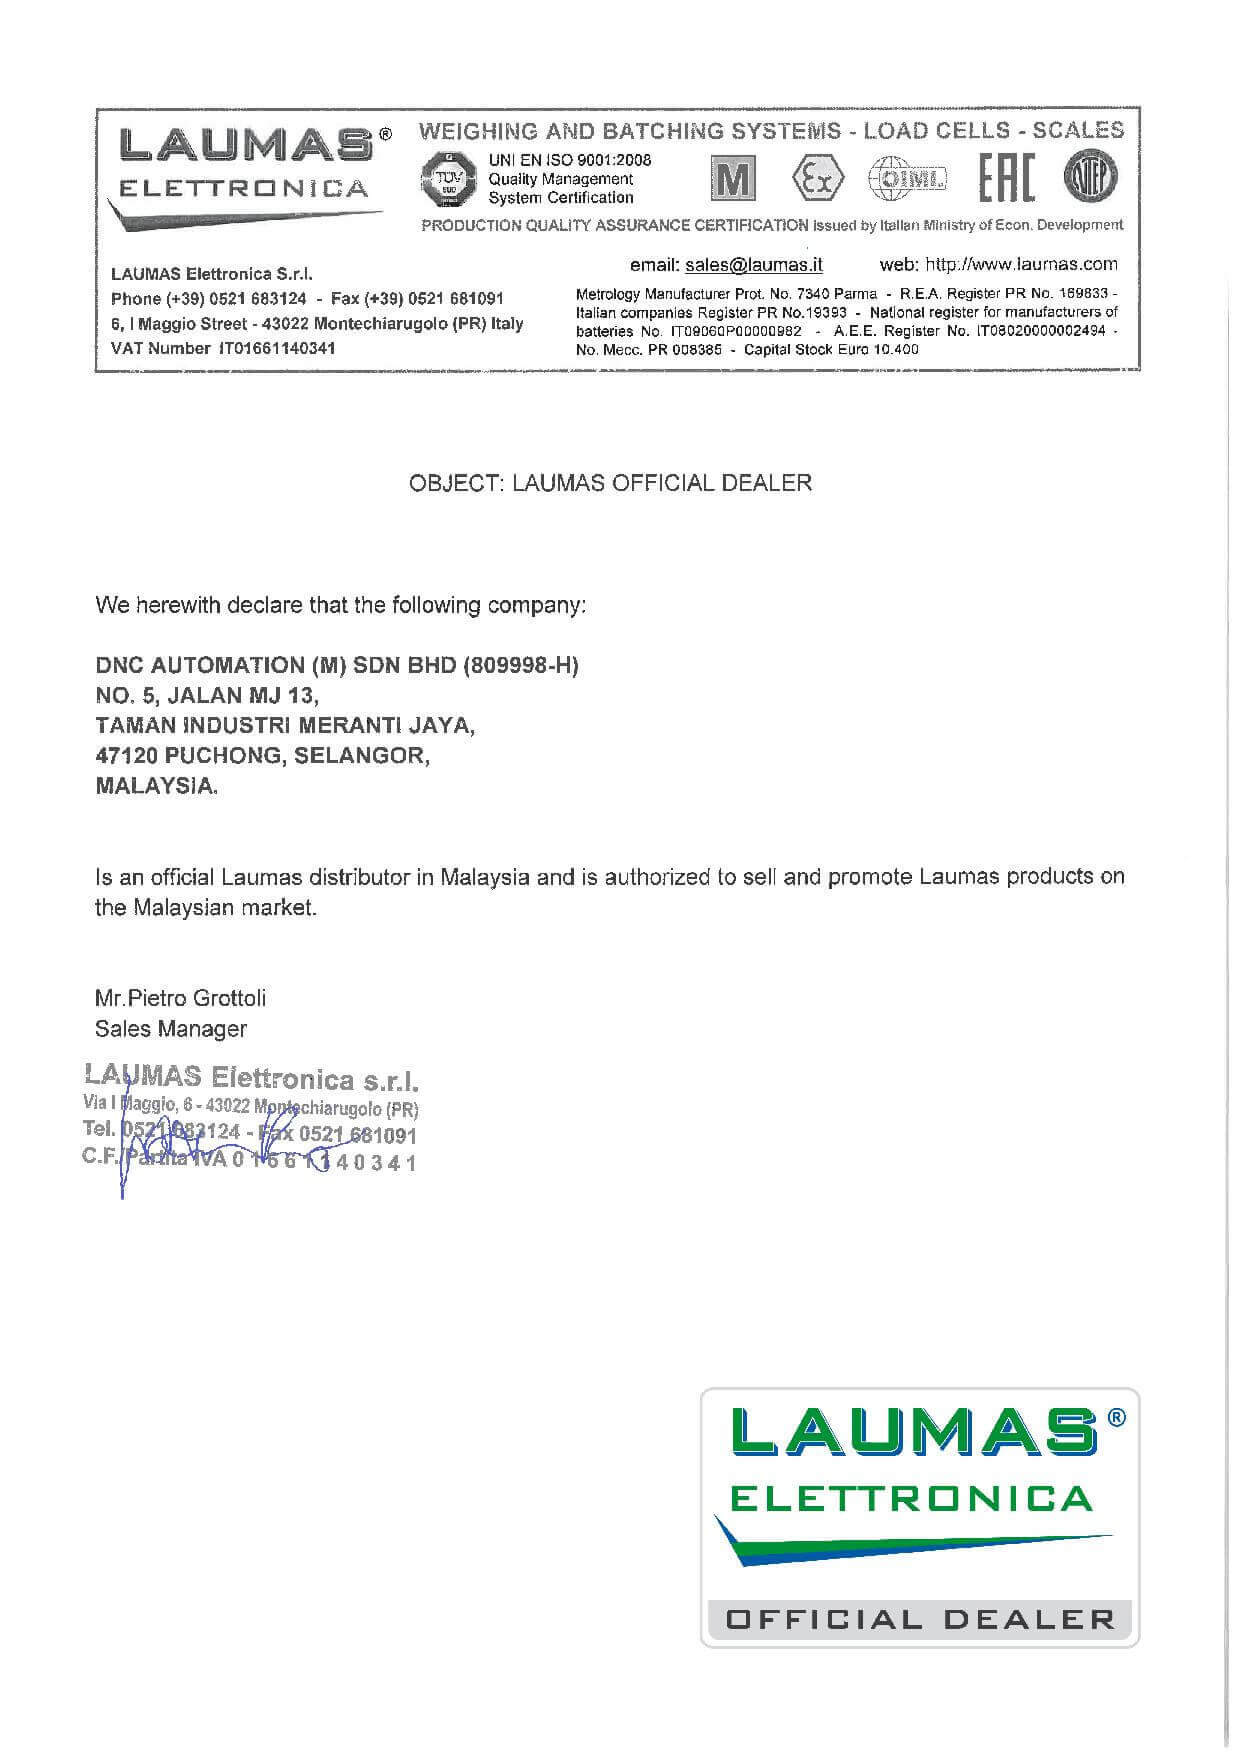 LAUMAS AUTHORIZED LETTER